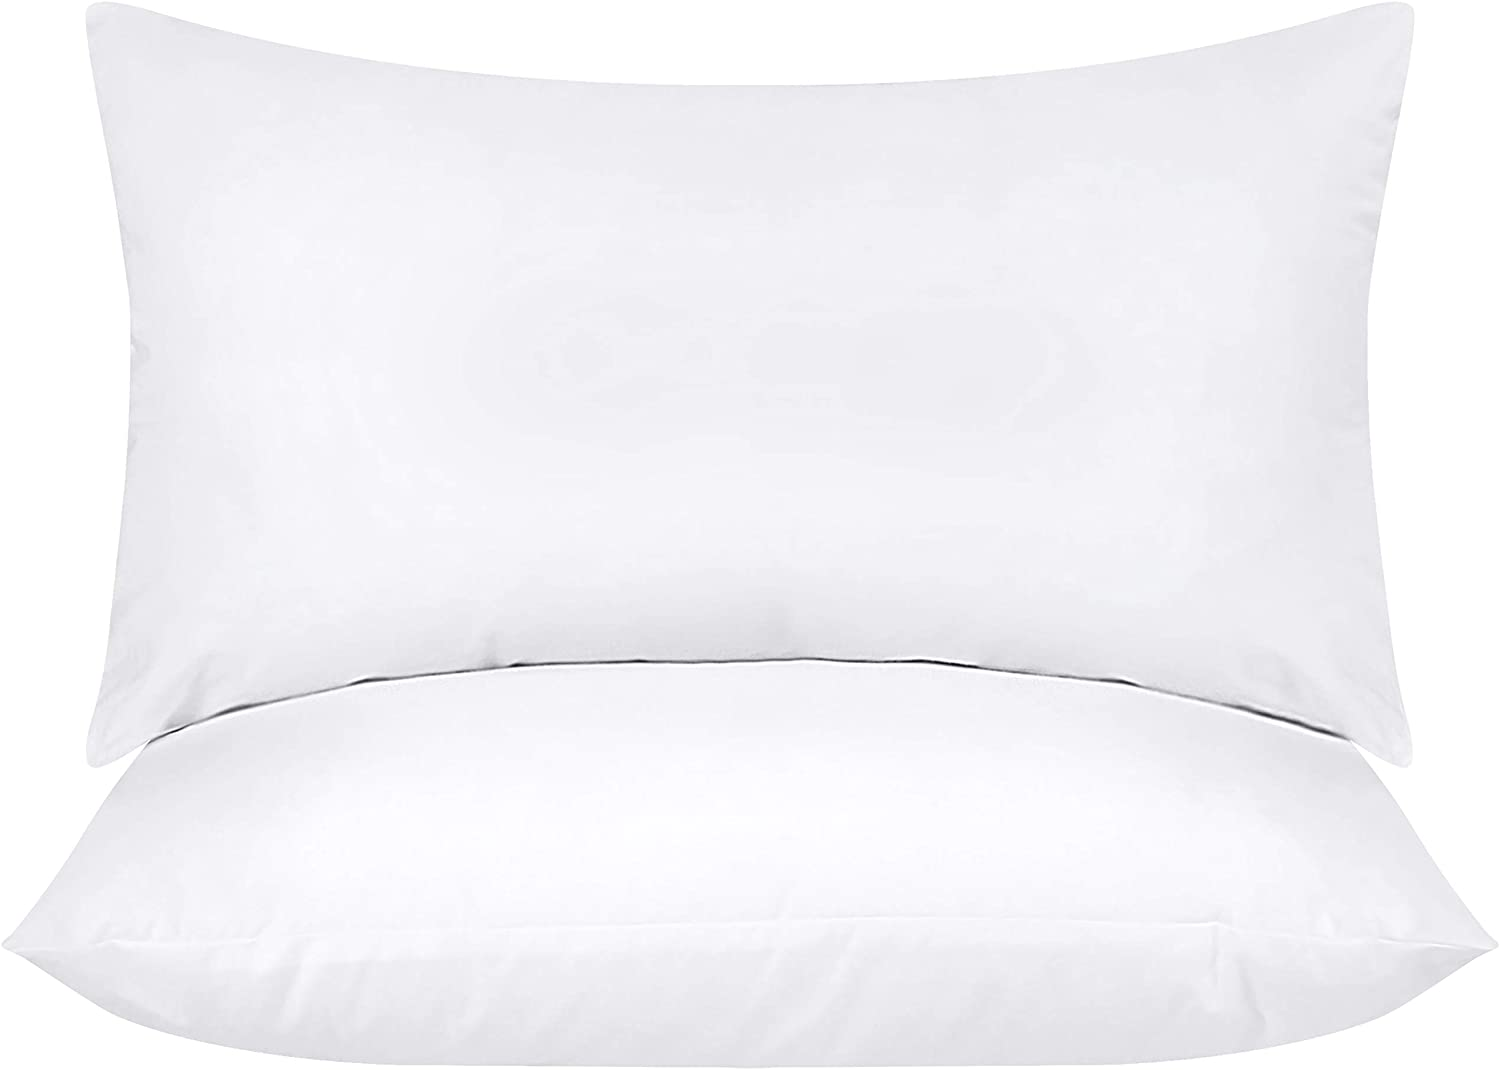 Utopia Bedding Throw Pillows Insert Pack of Ranking TOP15 White x 2 20 - High quality new 12